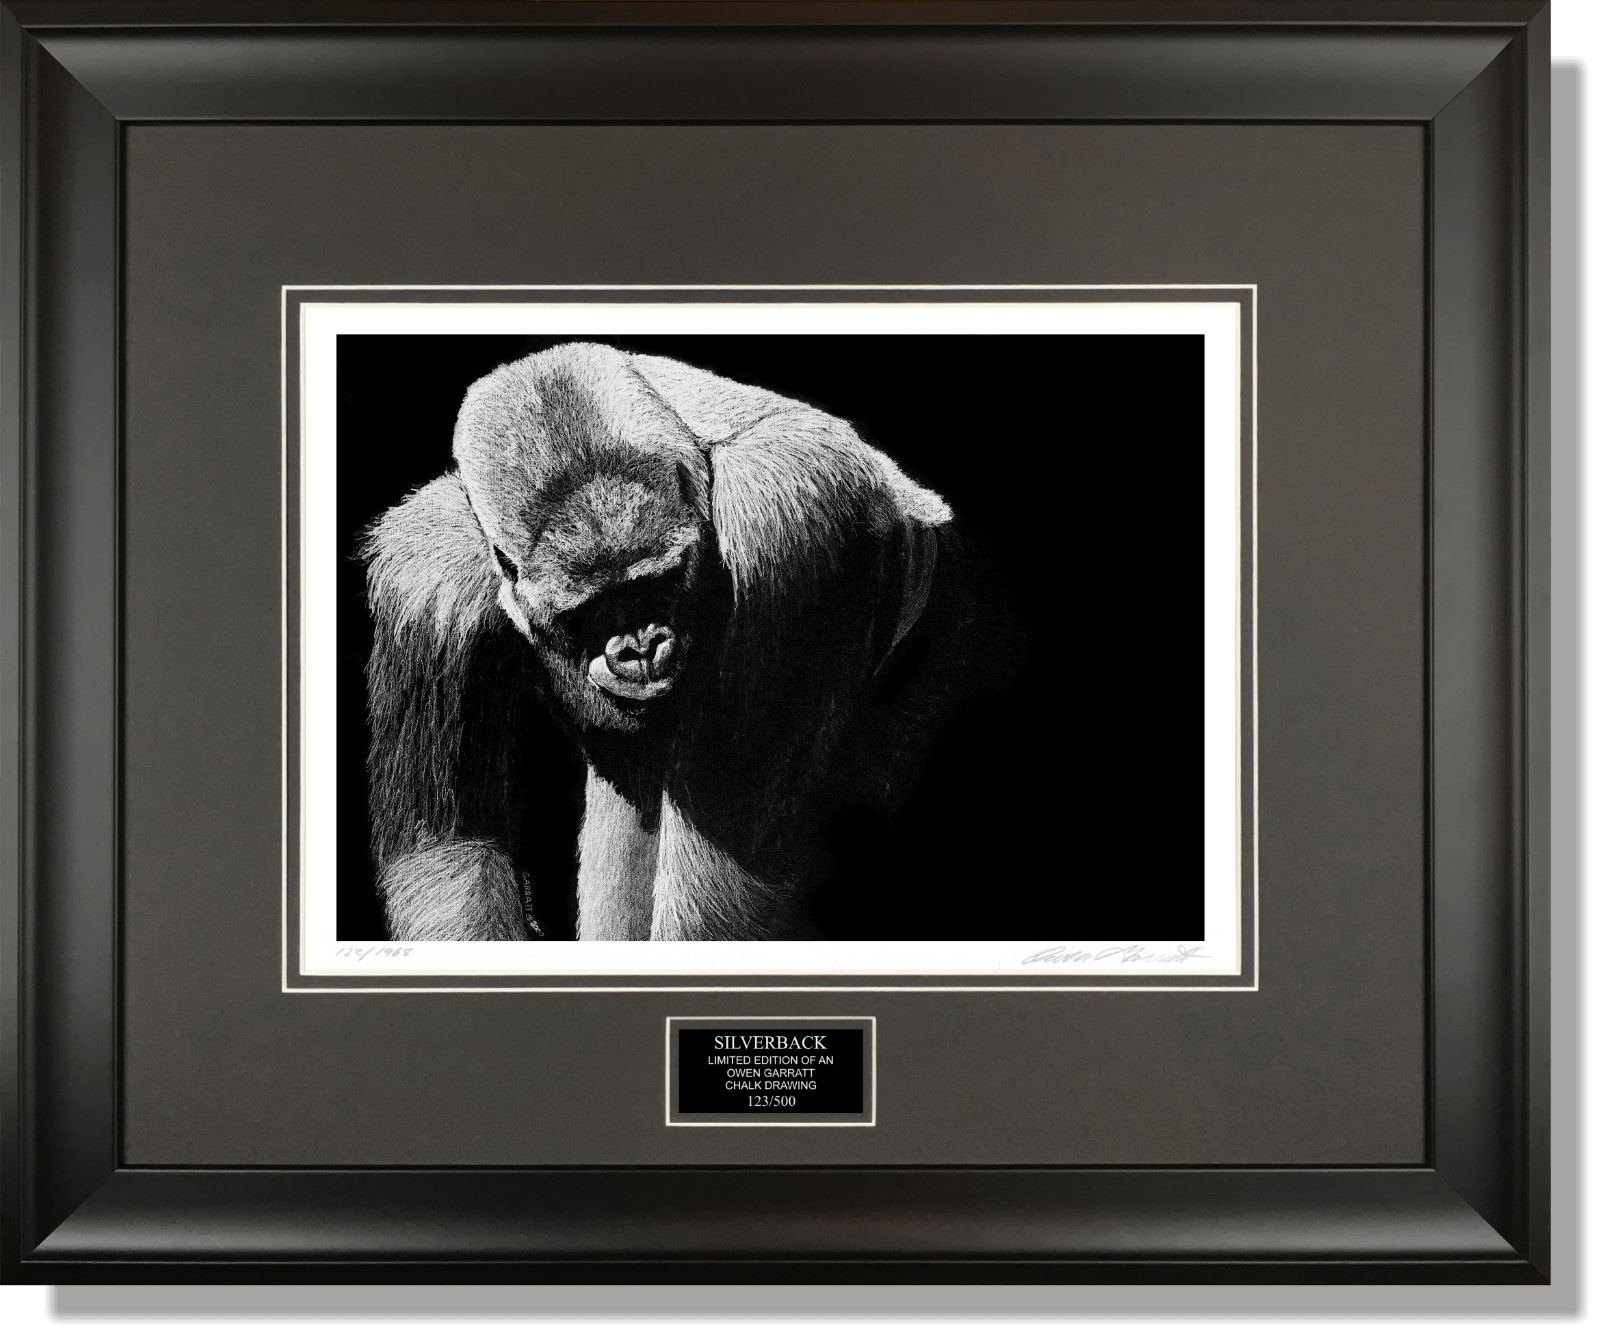 SILVERBACK - Wildlife art chalk art gorilla drawing by Owen Garratt framed